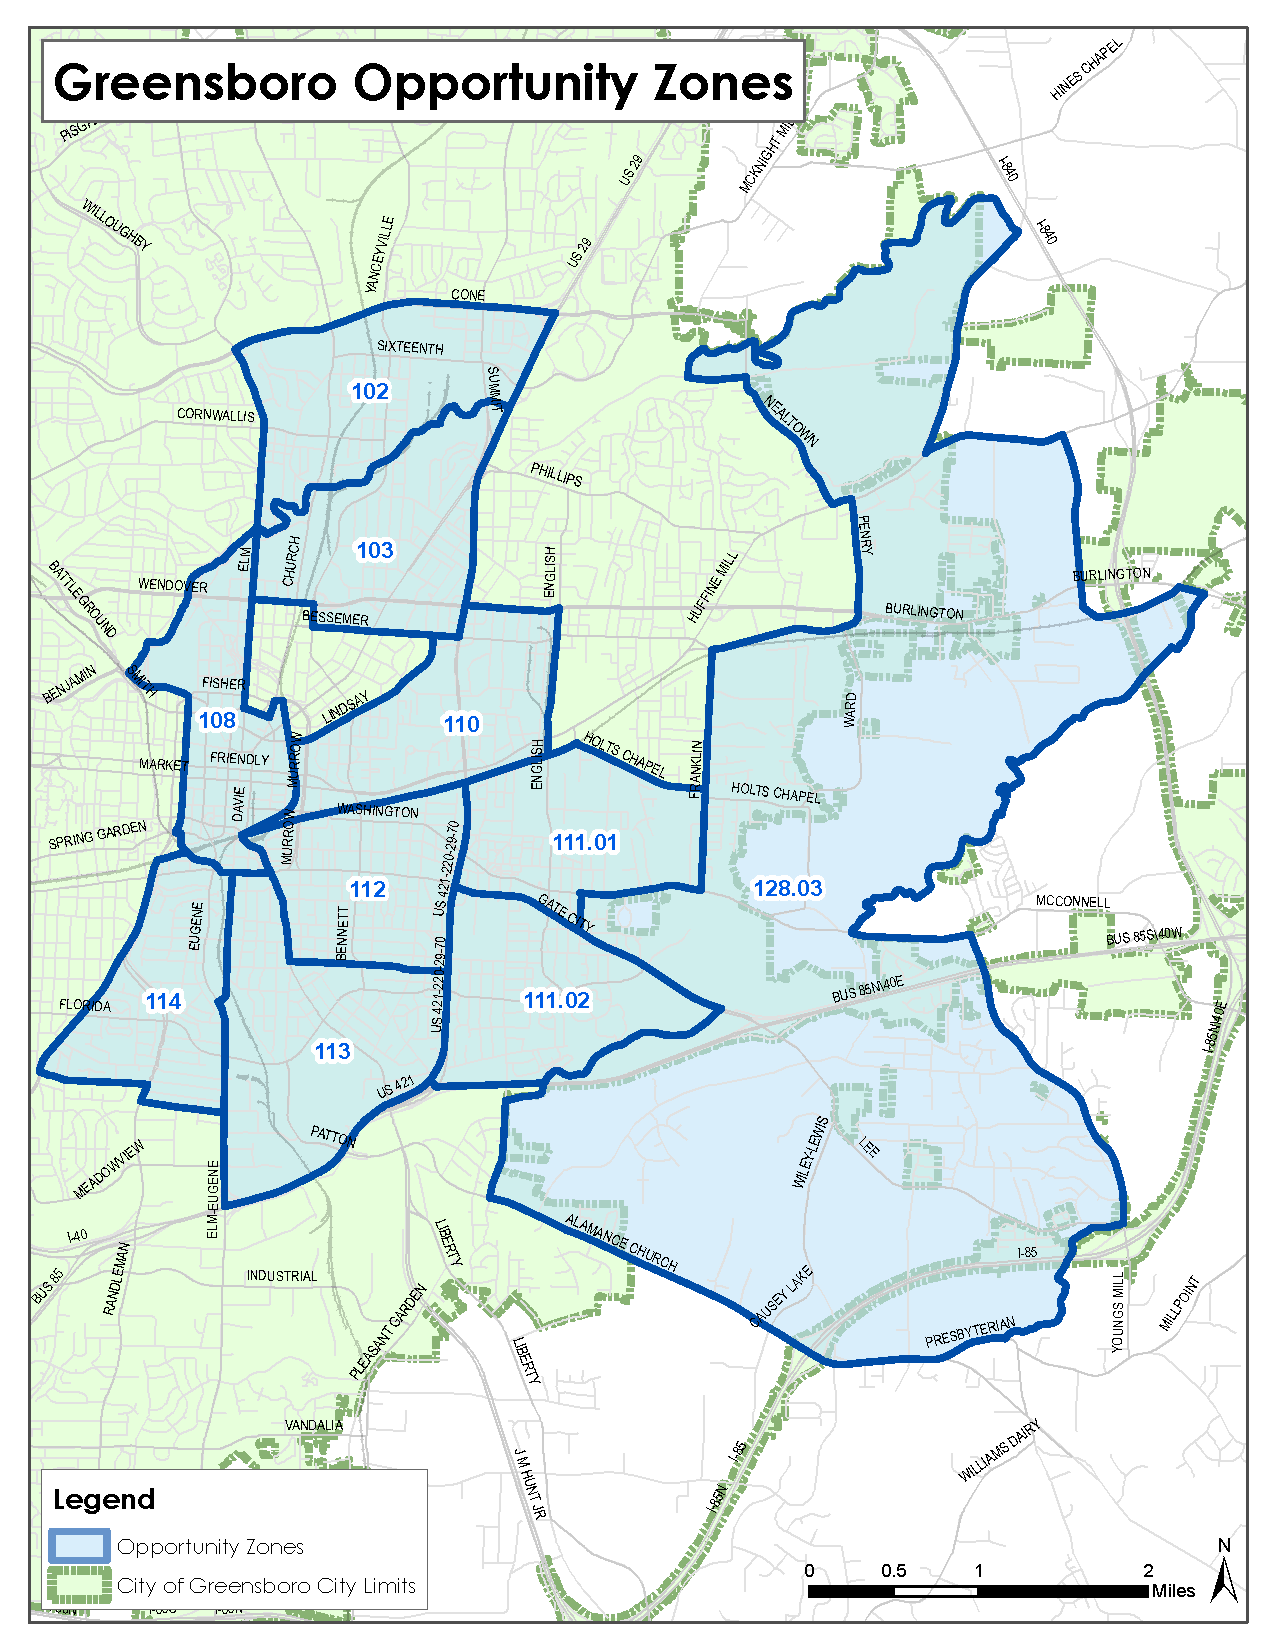 Opportunity Zones | Greensboro, NC on map of clarksville nc, map of charlotte nc, map of north carolina, map of memphis tn, map of ogden nc, map of biltmore forest nc, map of griffin nc, map of raleigh nc, map of atlanta, map of bunnlevel nc, map of salemburg nc, map of saxapahaw nc, map of greenville nc, map of hog island nc, map of charlottesville nc, map of orange co nc, map of asheville nc, map of moyock nc, map of ferguson nc, map of columbus ga,